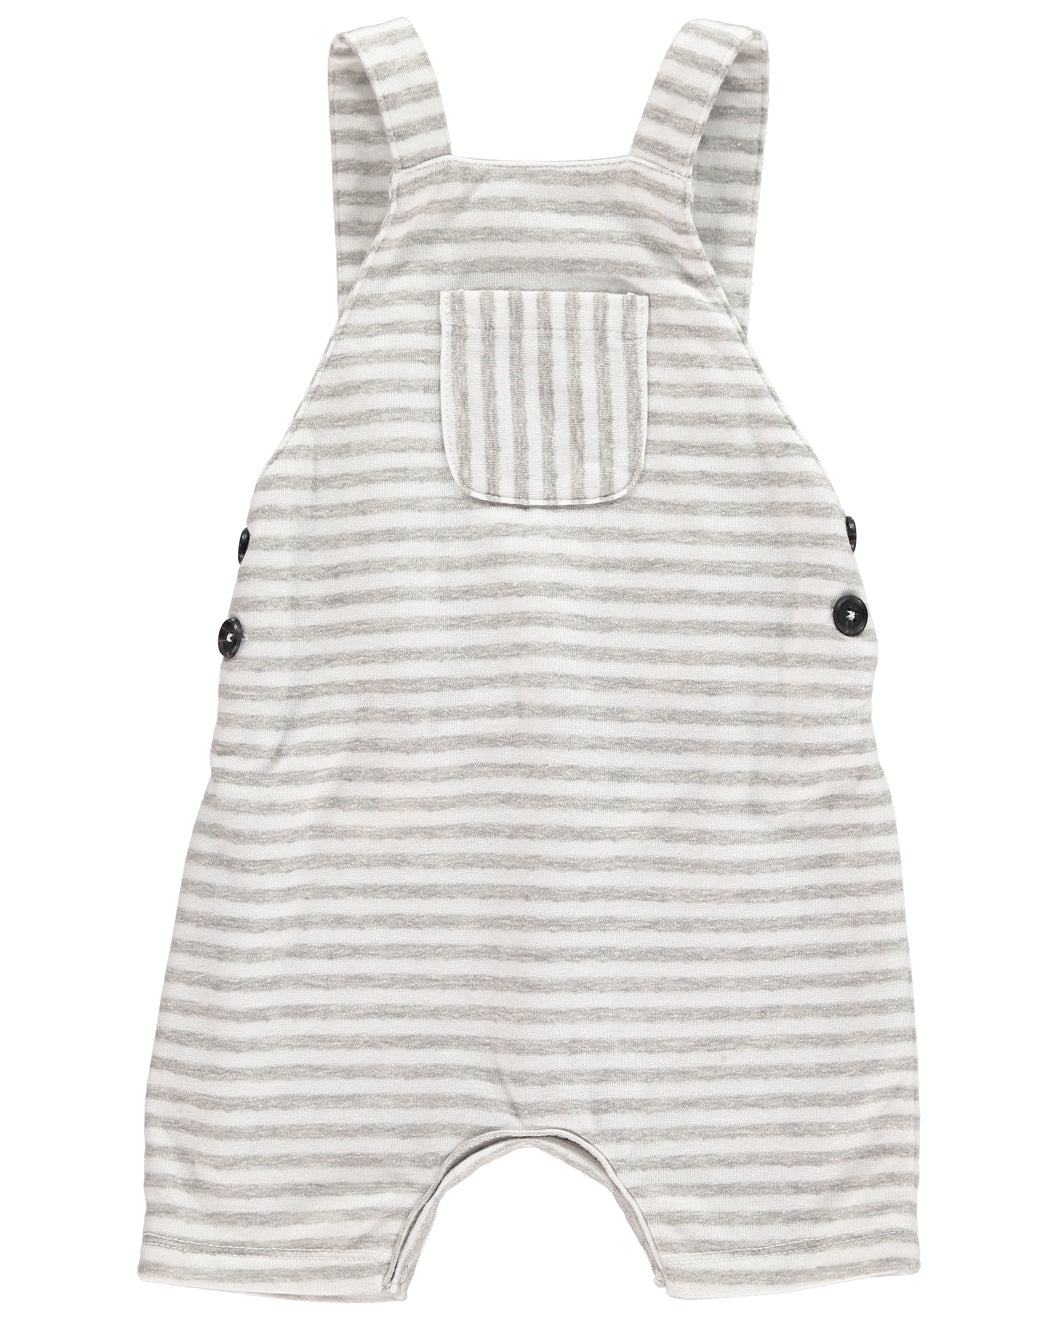 Grey/white jersey shortie dungarees